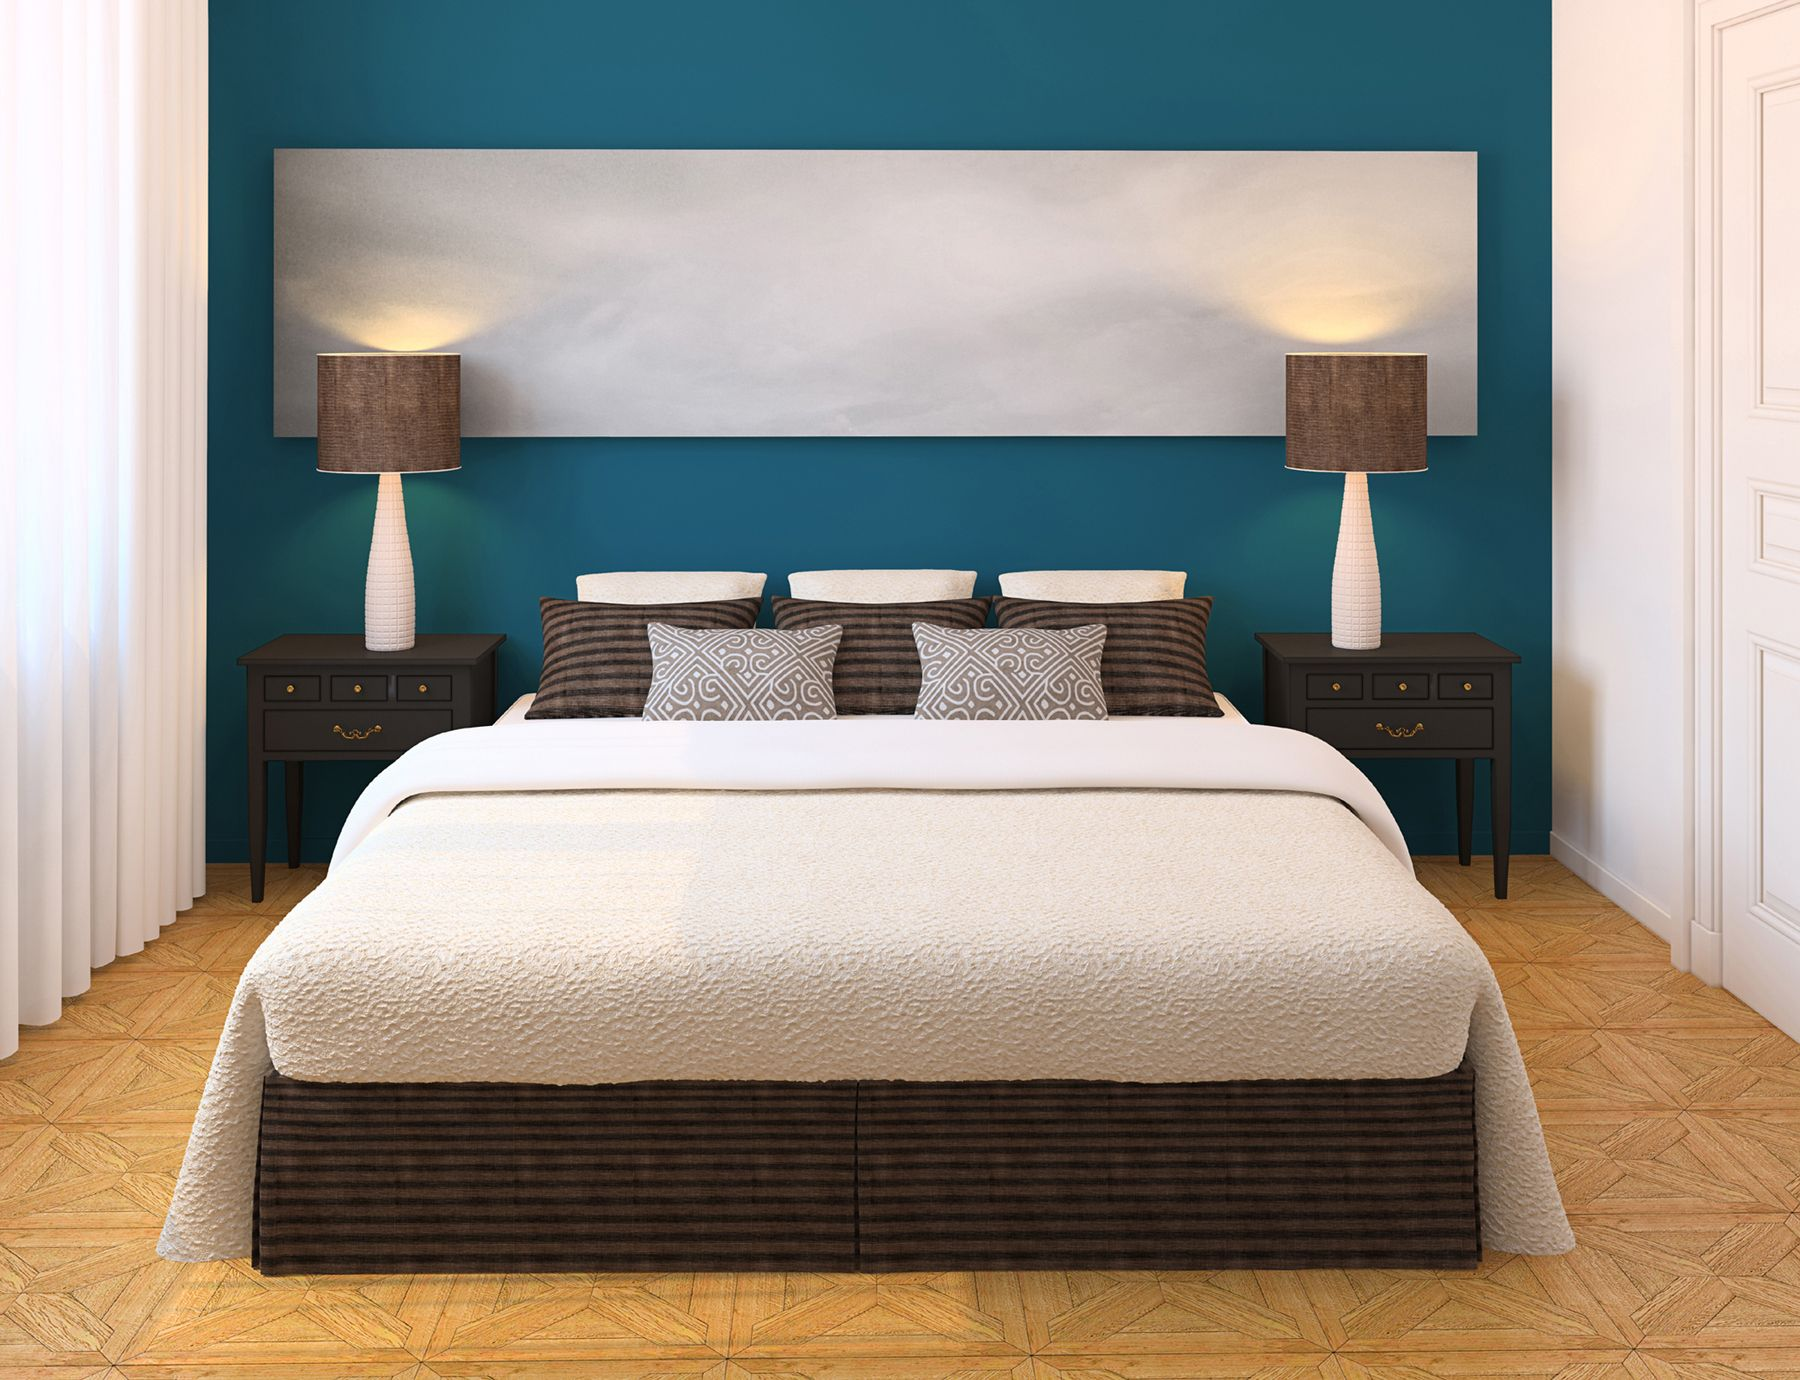 Schlafzimmer Wand Petrol Splendid Bedroom Paint Ideas Pertaining To Master Bedroom